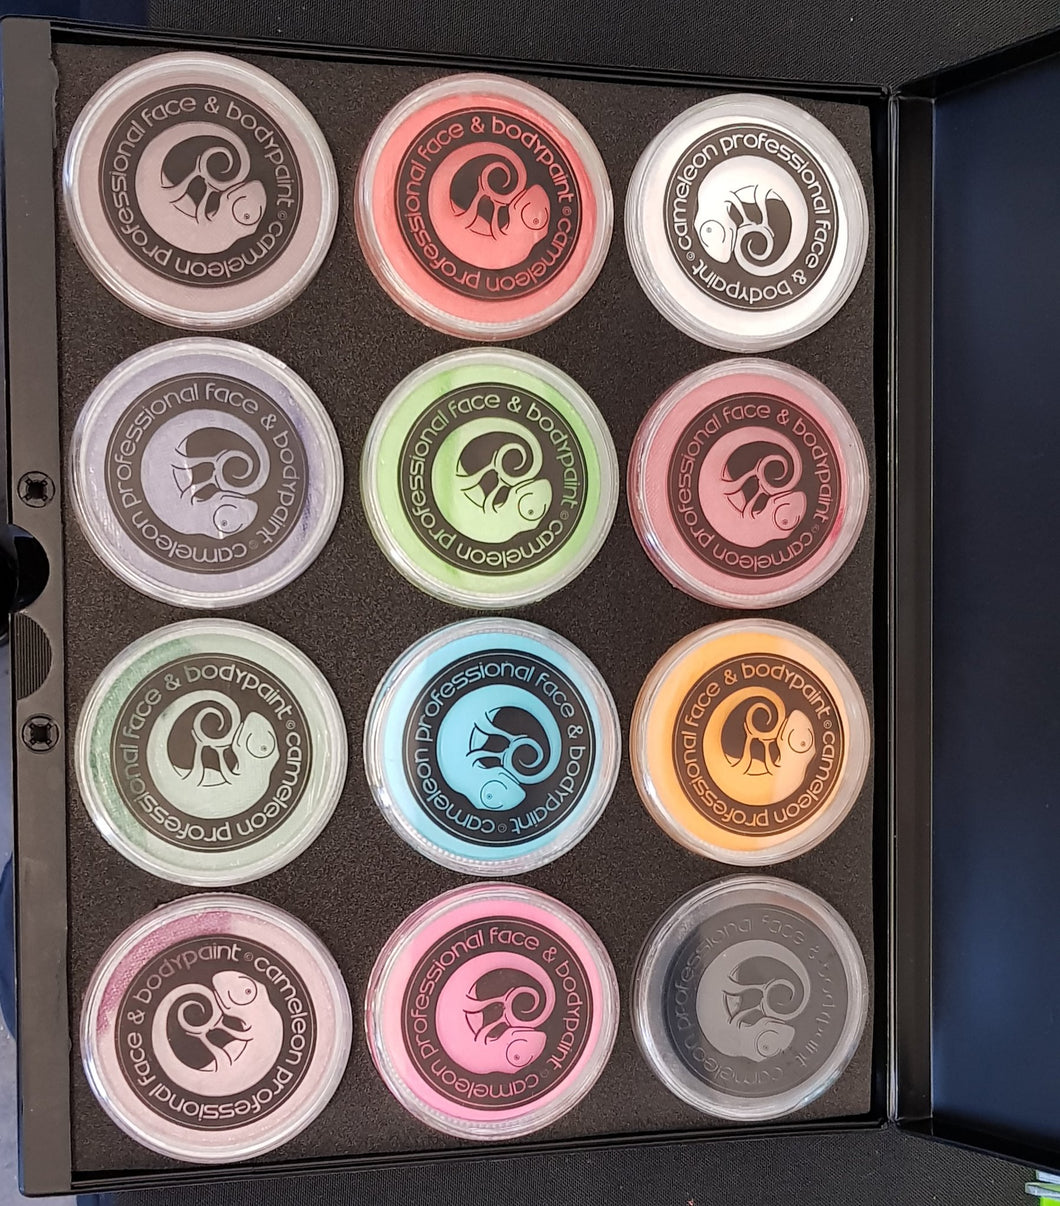 Cameleon palette containing 12 32g facepaints in assorted colours